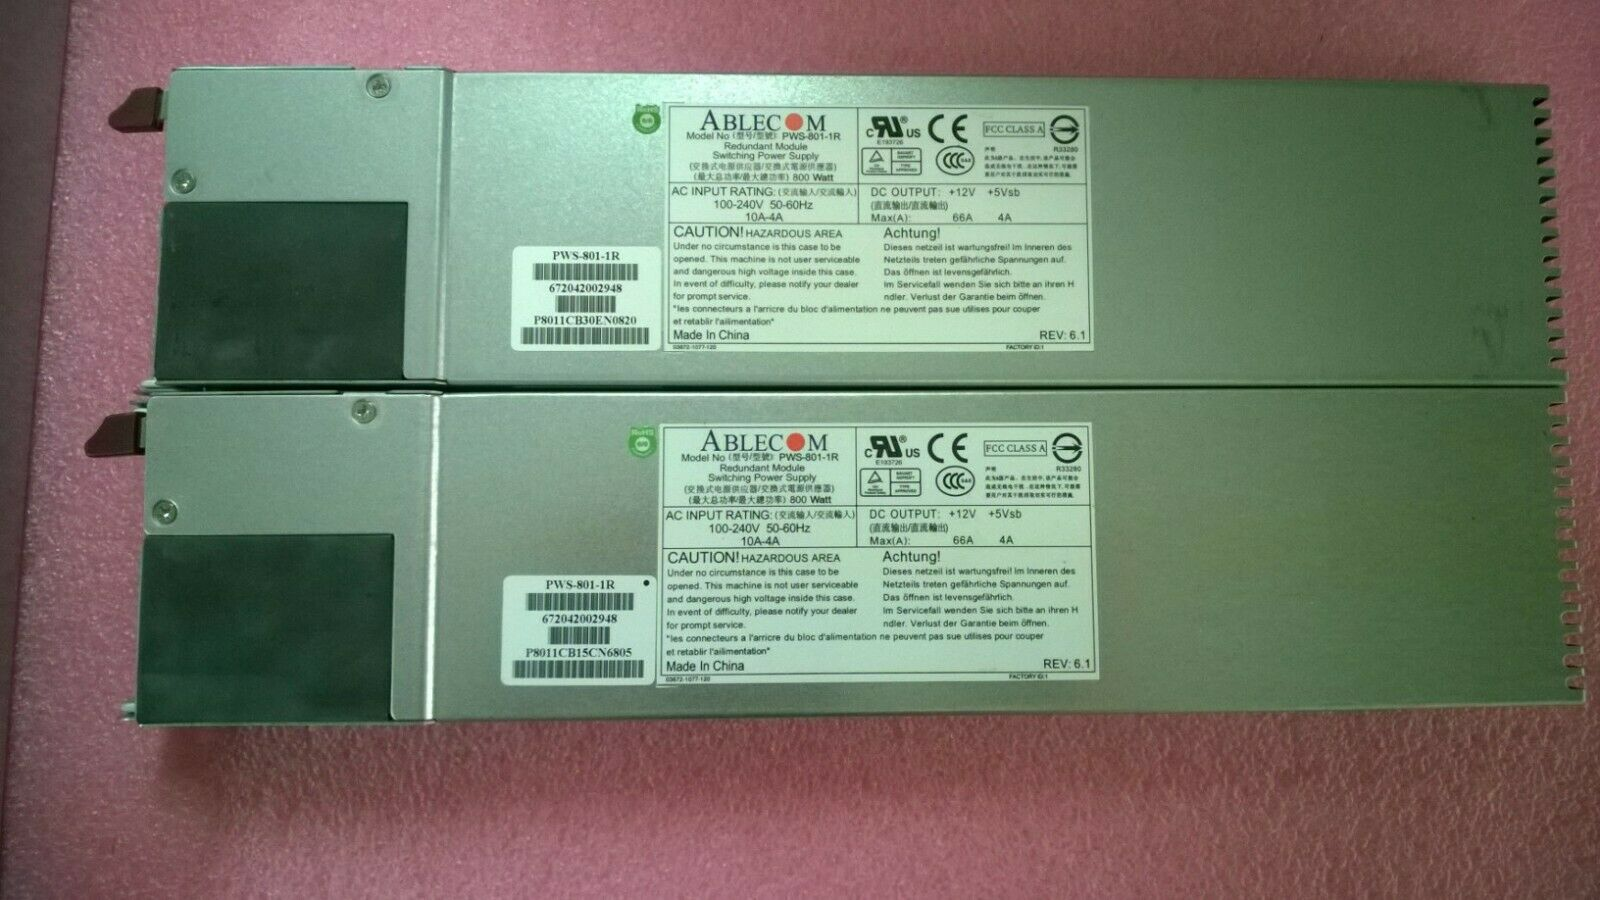 1 lot of 2 Ablecom PWS-801-1R Redundant Module Switching Power Supply